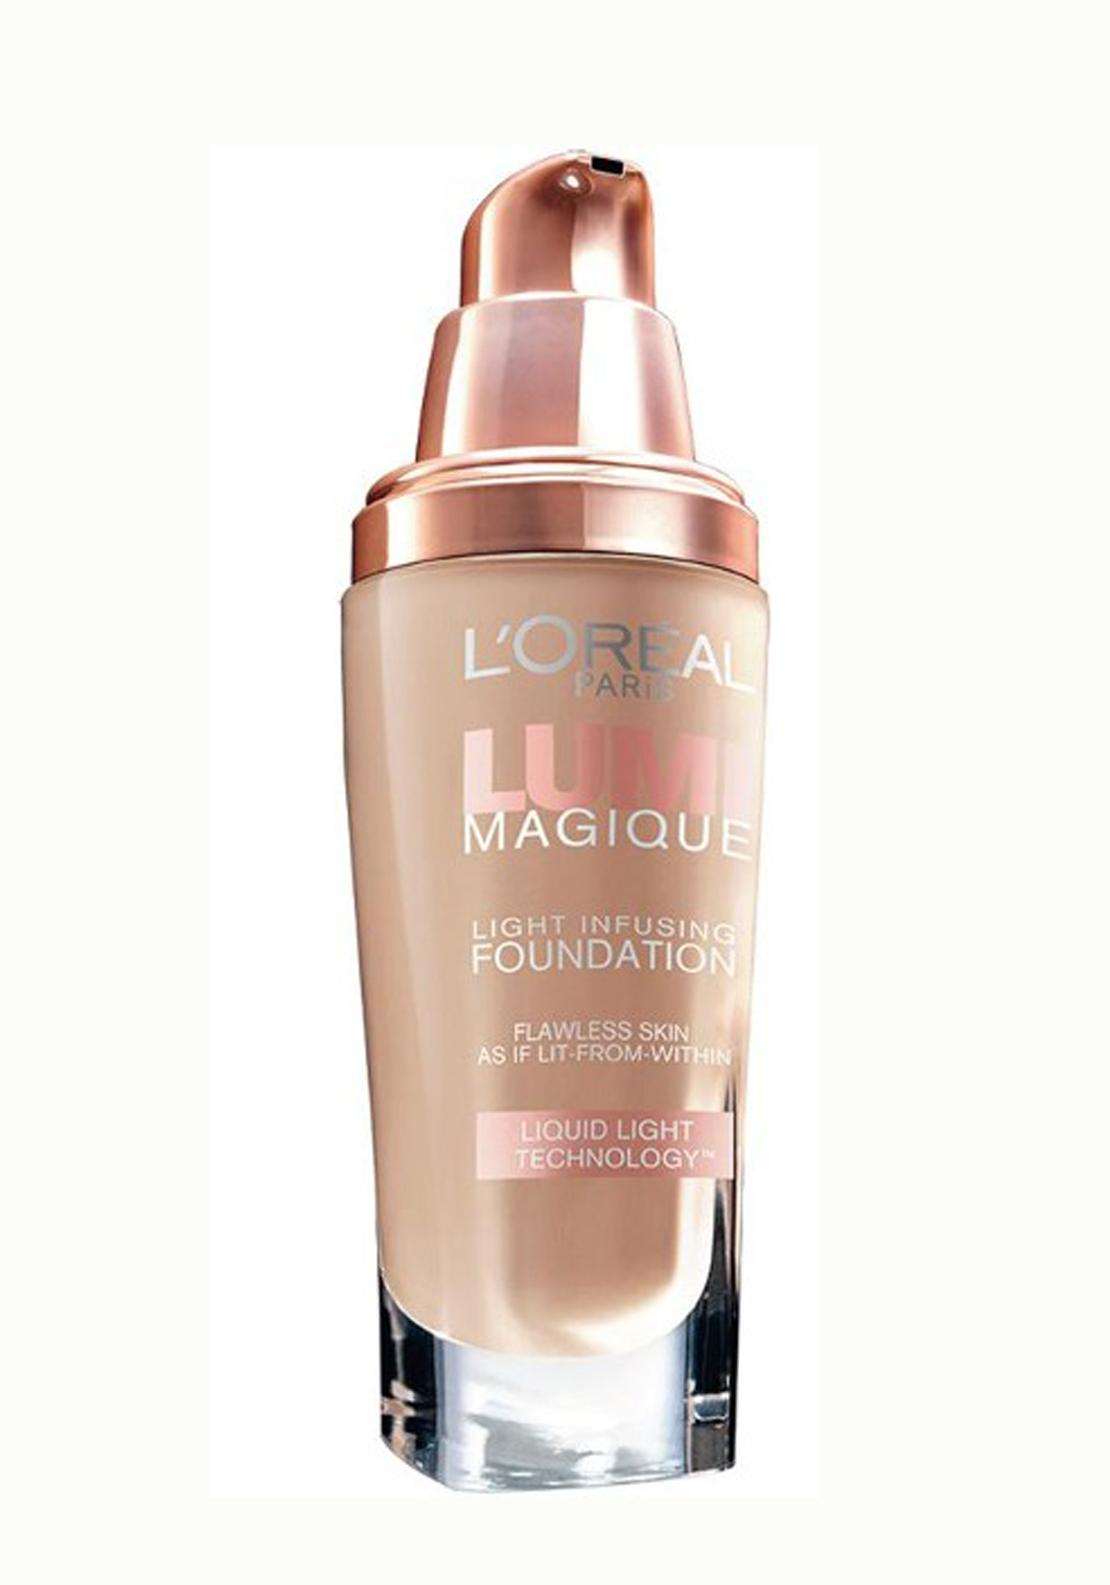 L'Oreal Lumi Magique Foundation, 30ml